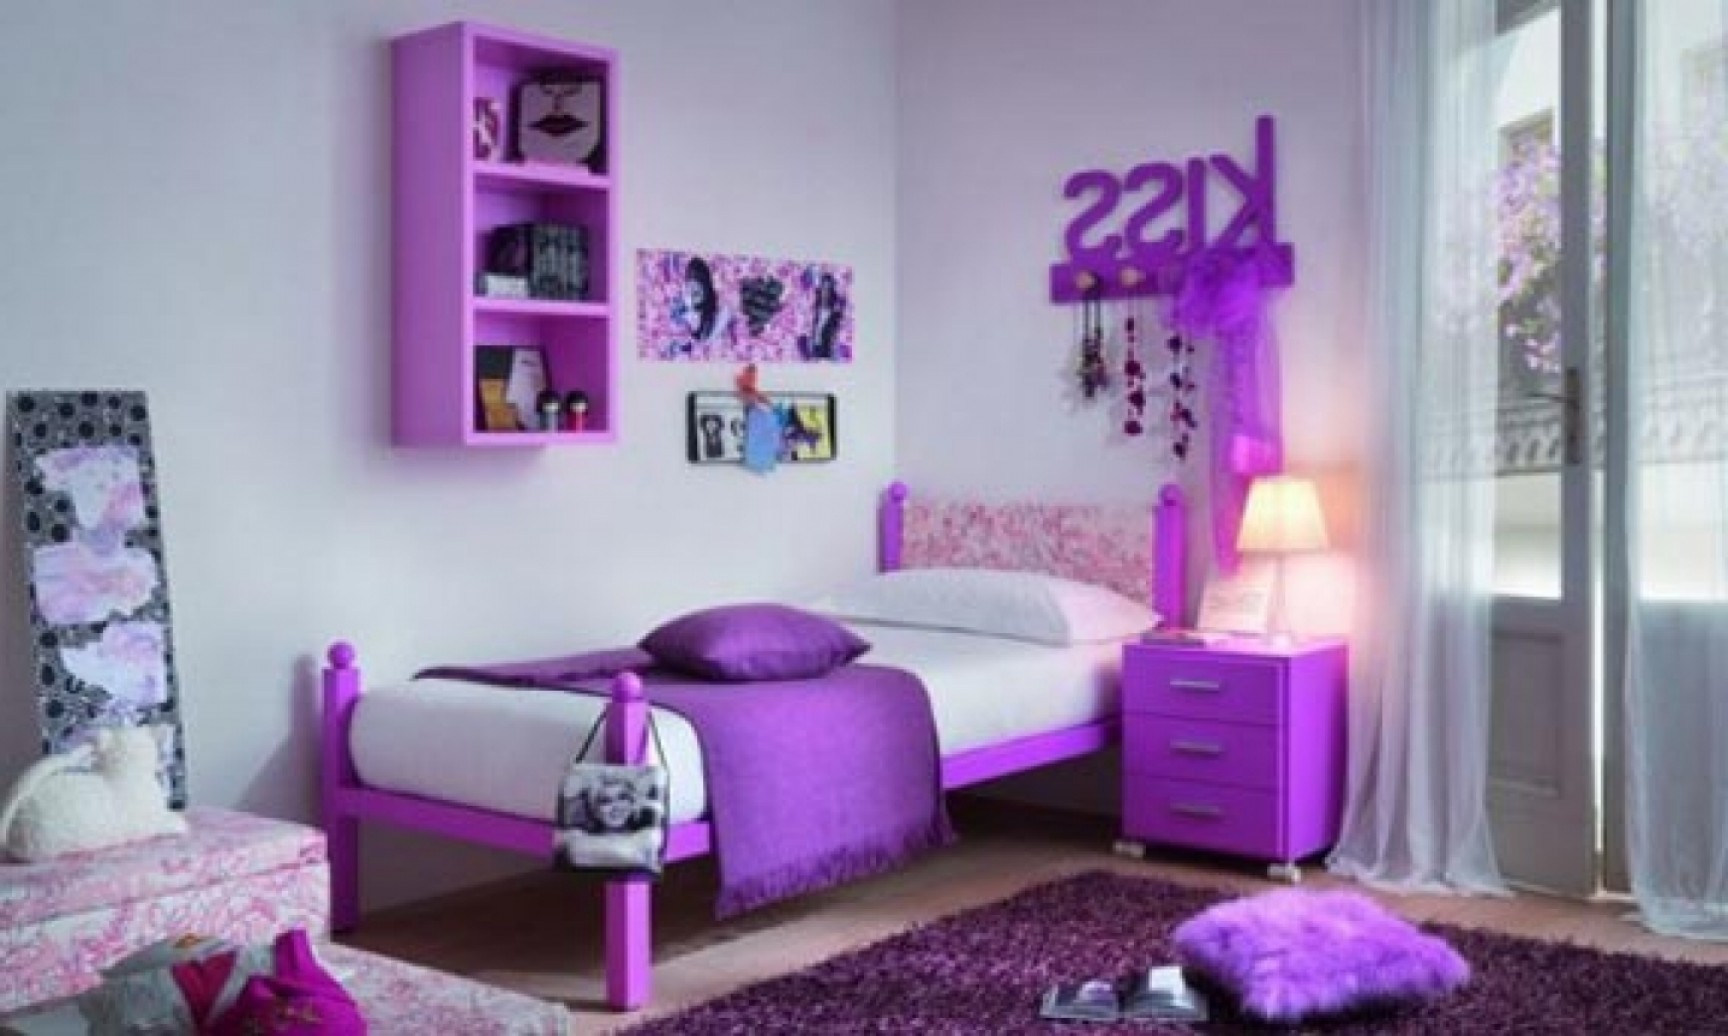 5 tips in small bedroom ideas for teenagers Bedroom ideas for teens